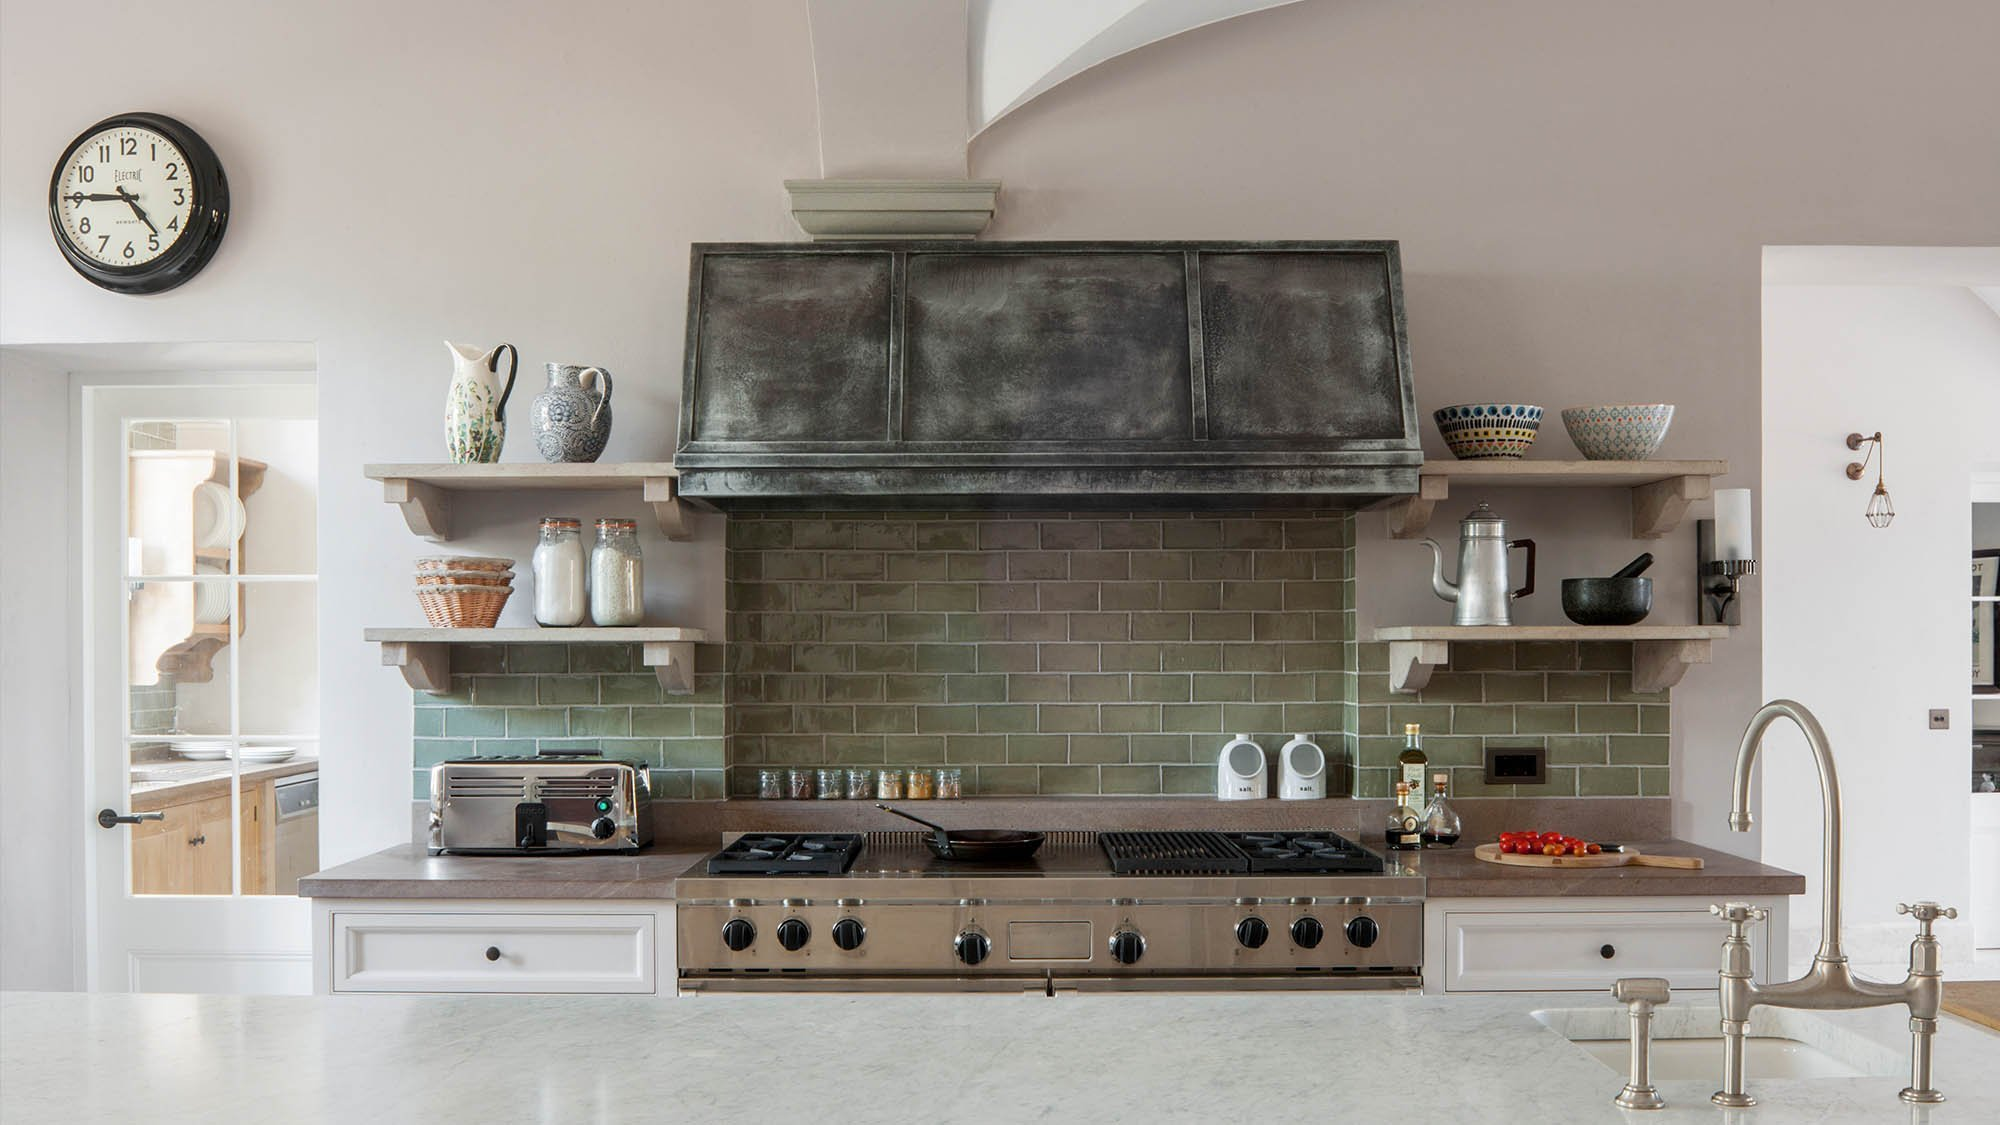 Wolf range oven with bespoke aged extraction hood